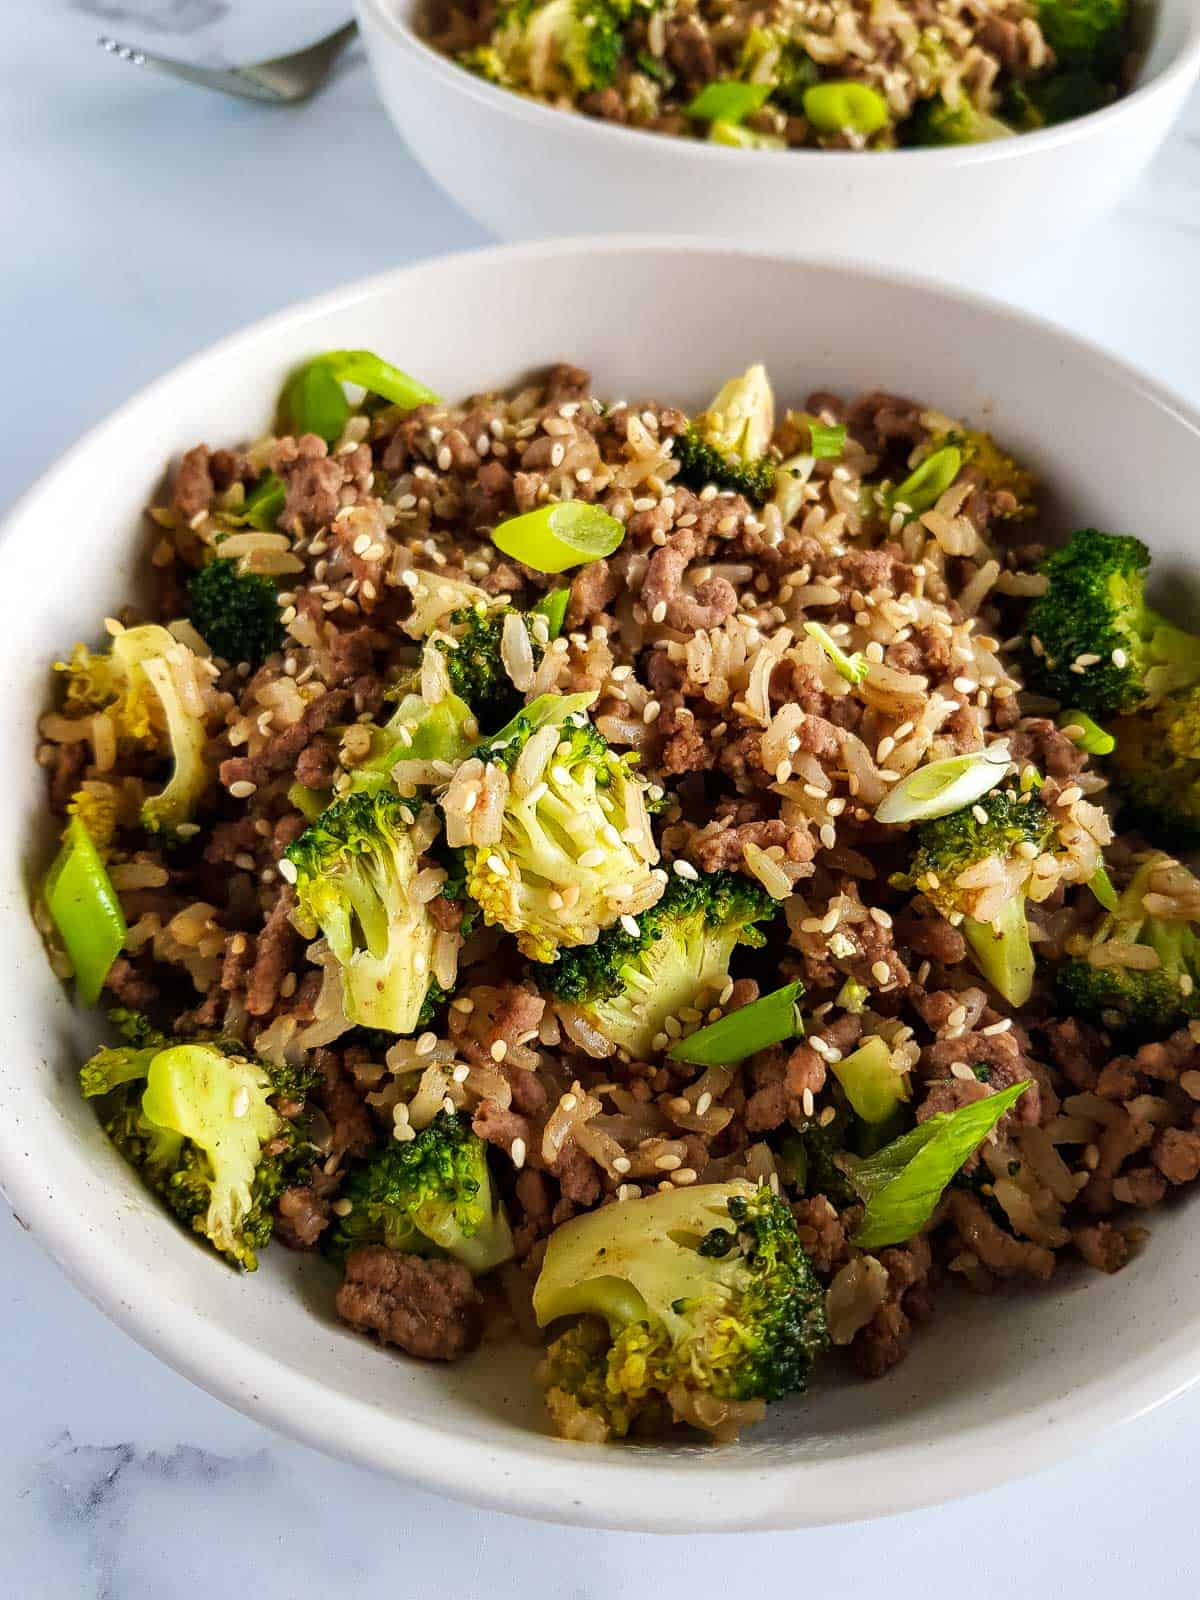 Ground beef and broccoli stir fry in a bowl.